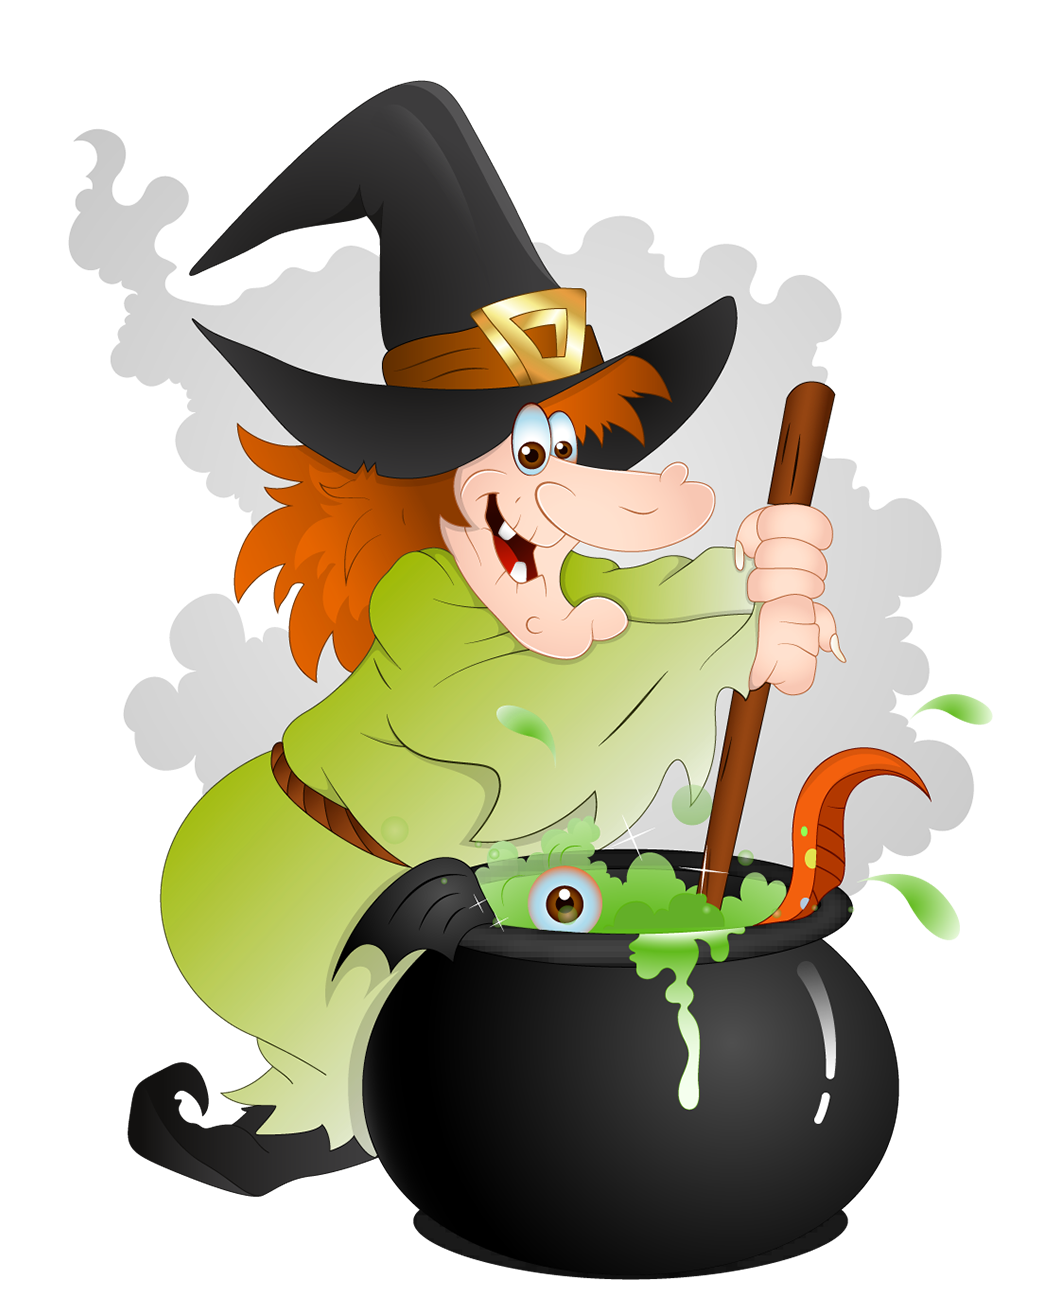 Halloween arod jnice kliparty. Ghost clipart fake